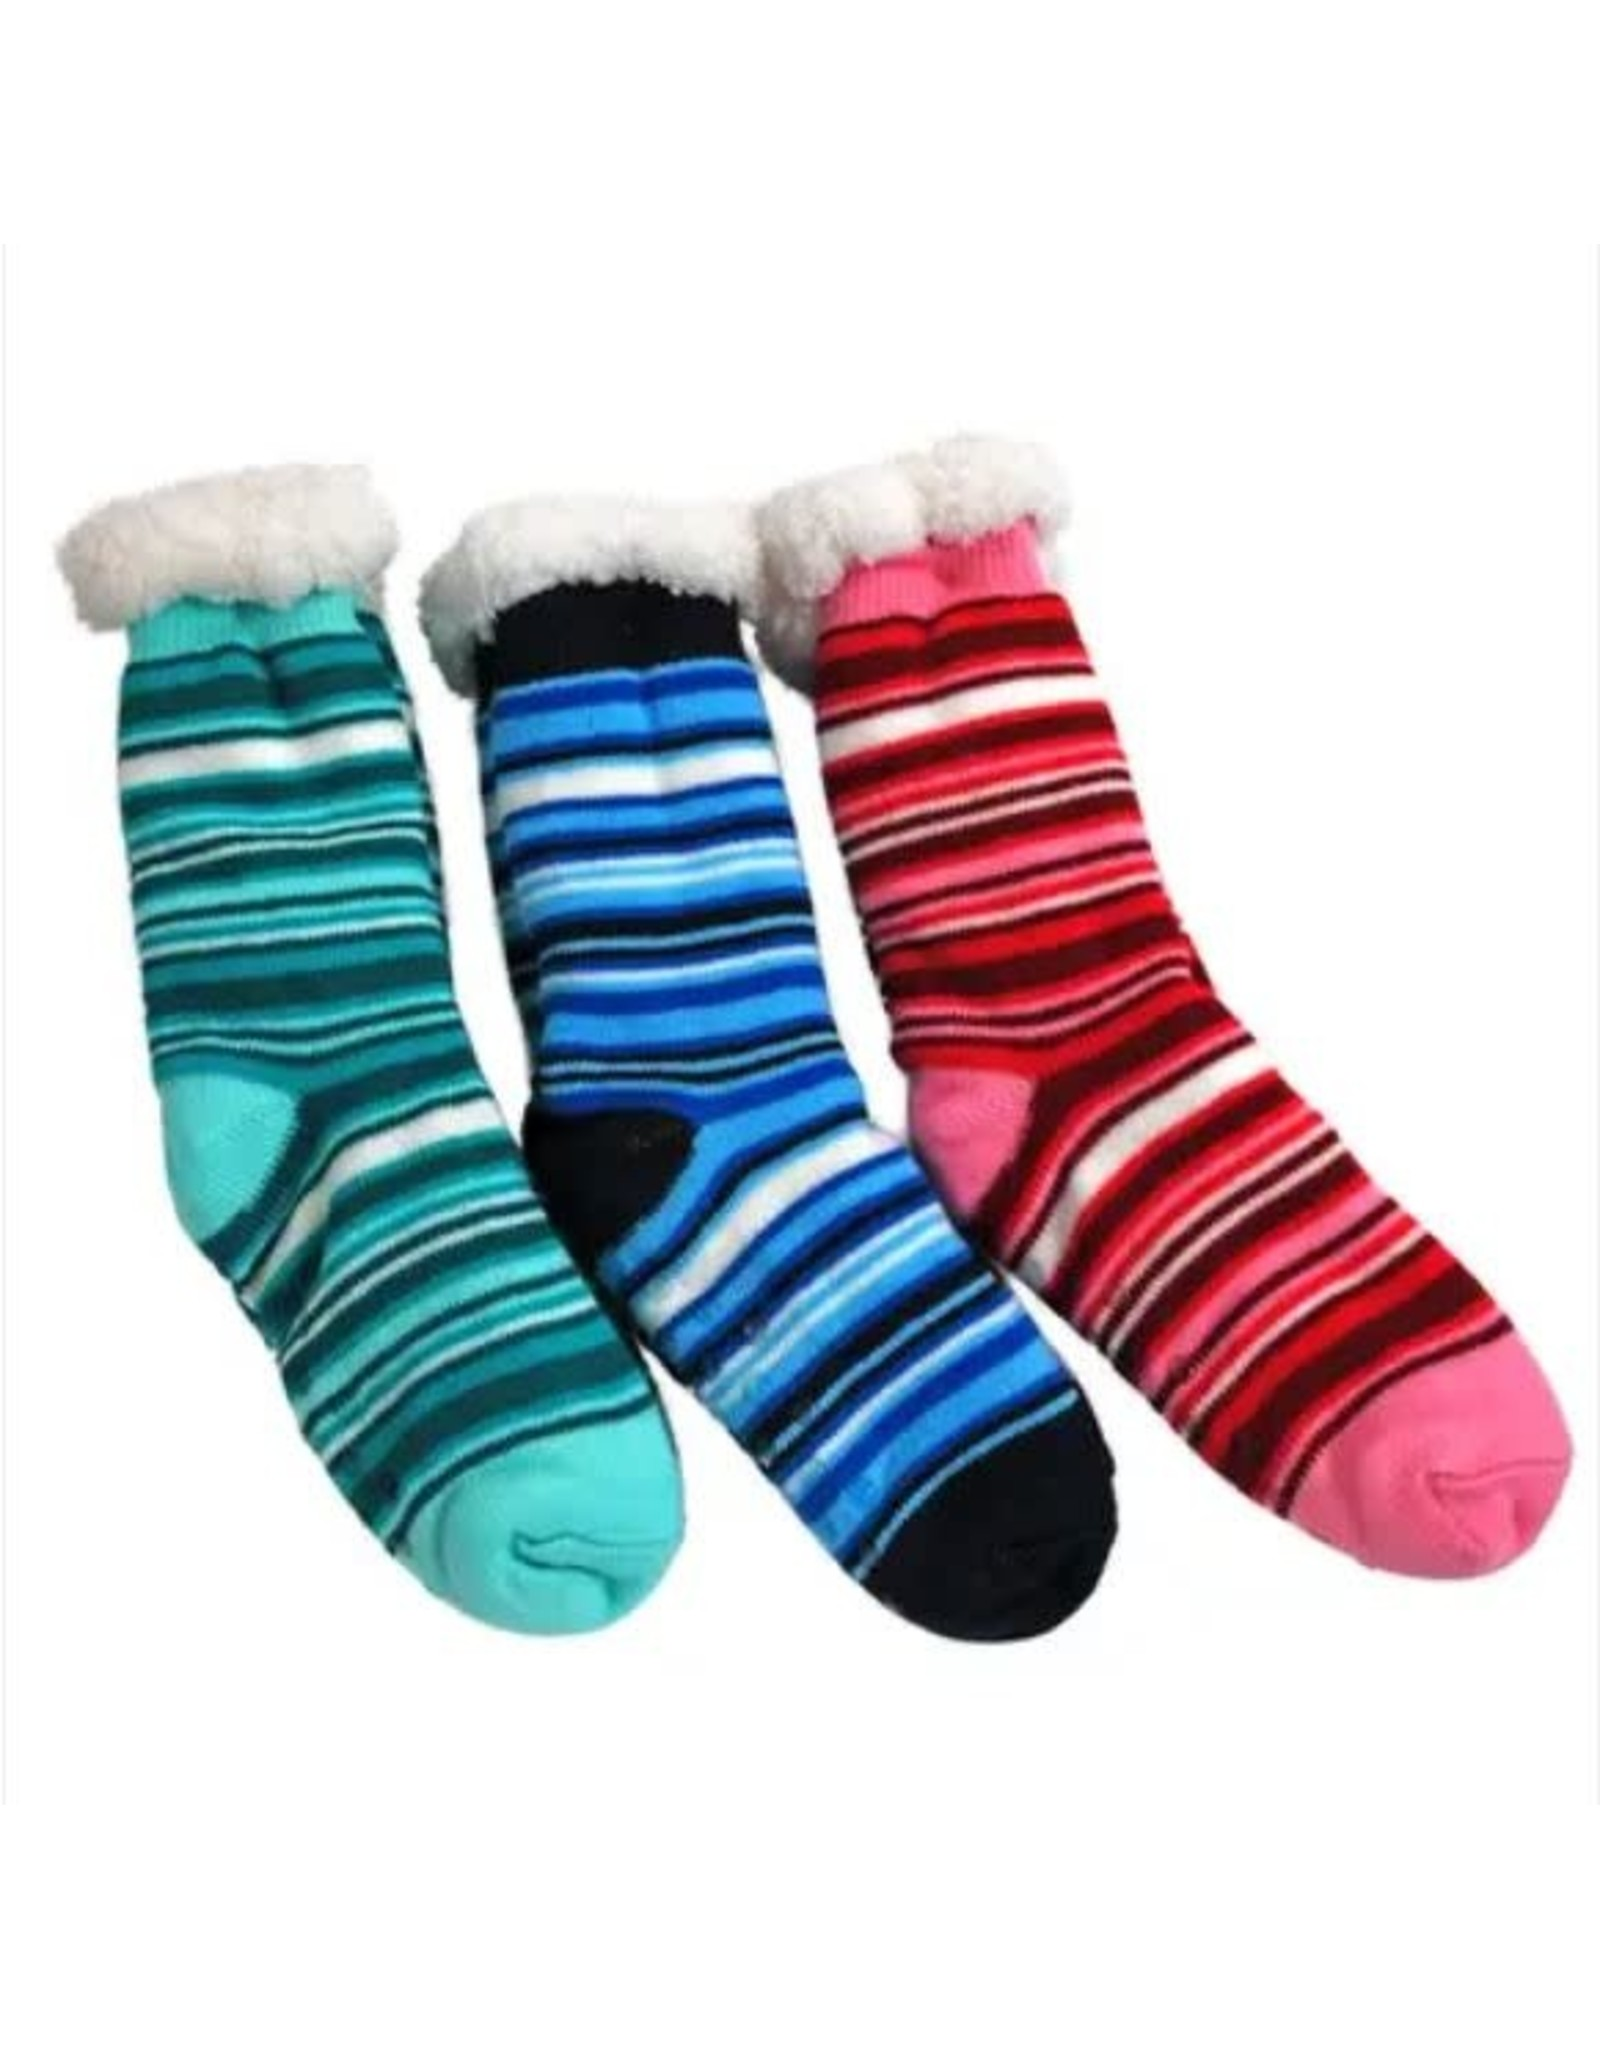 PARADE STREET PRODUCTS STRIPED FLUFFY SOCKS